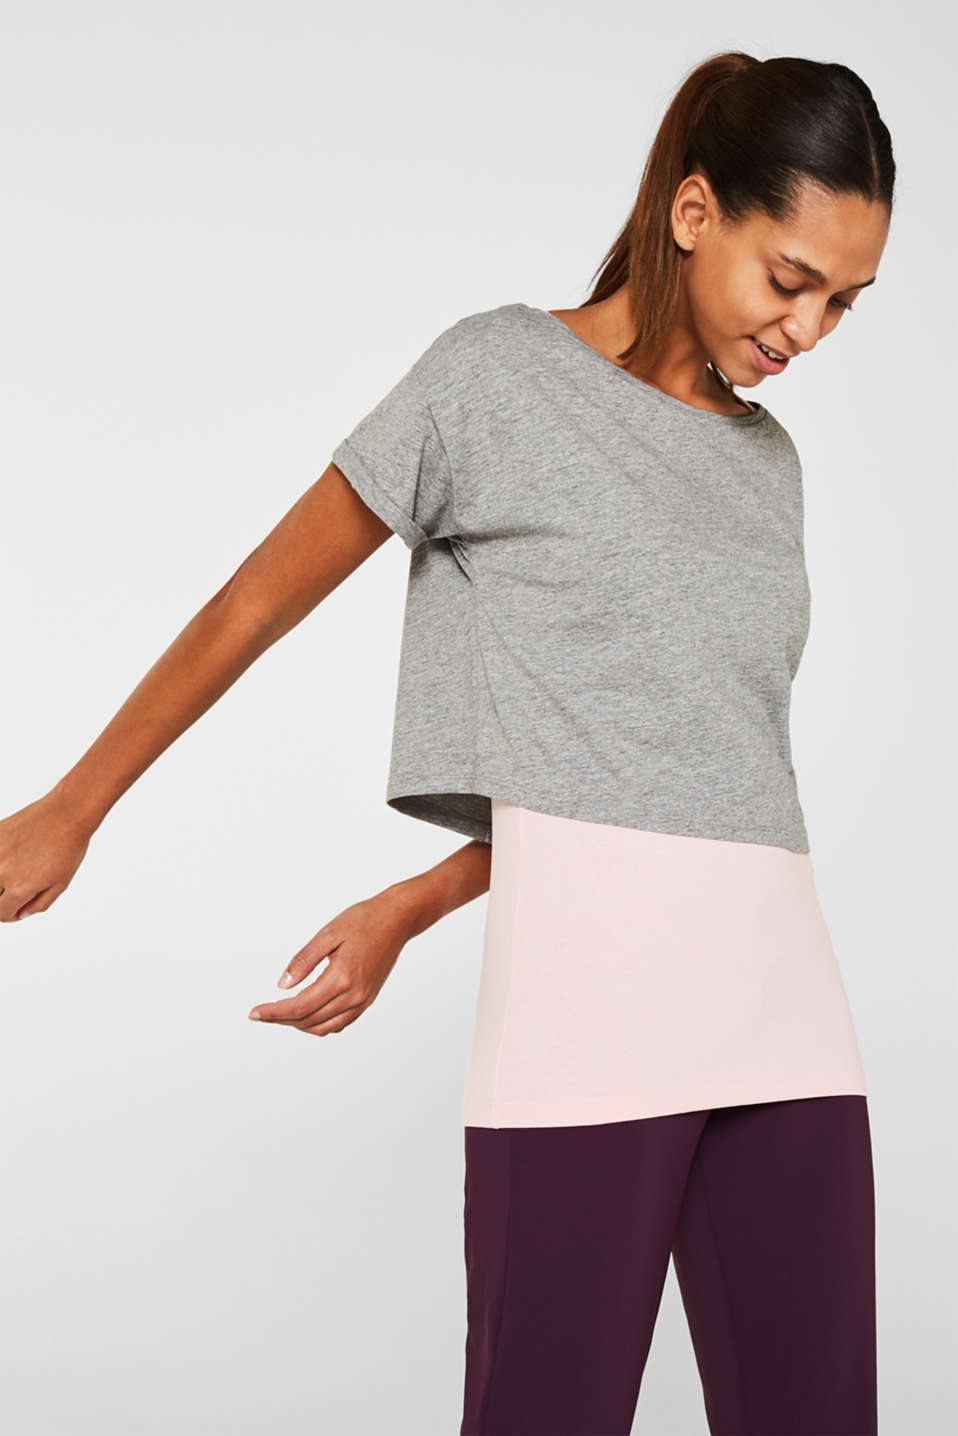 Esprit - 2-in-1 layered stretch top